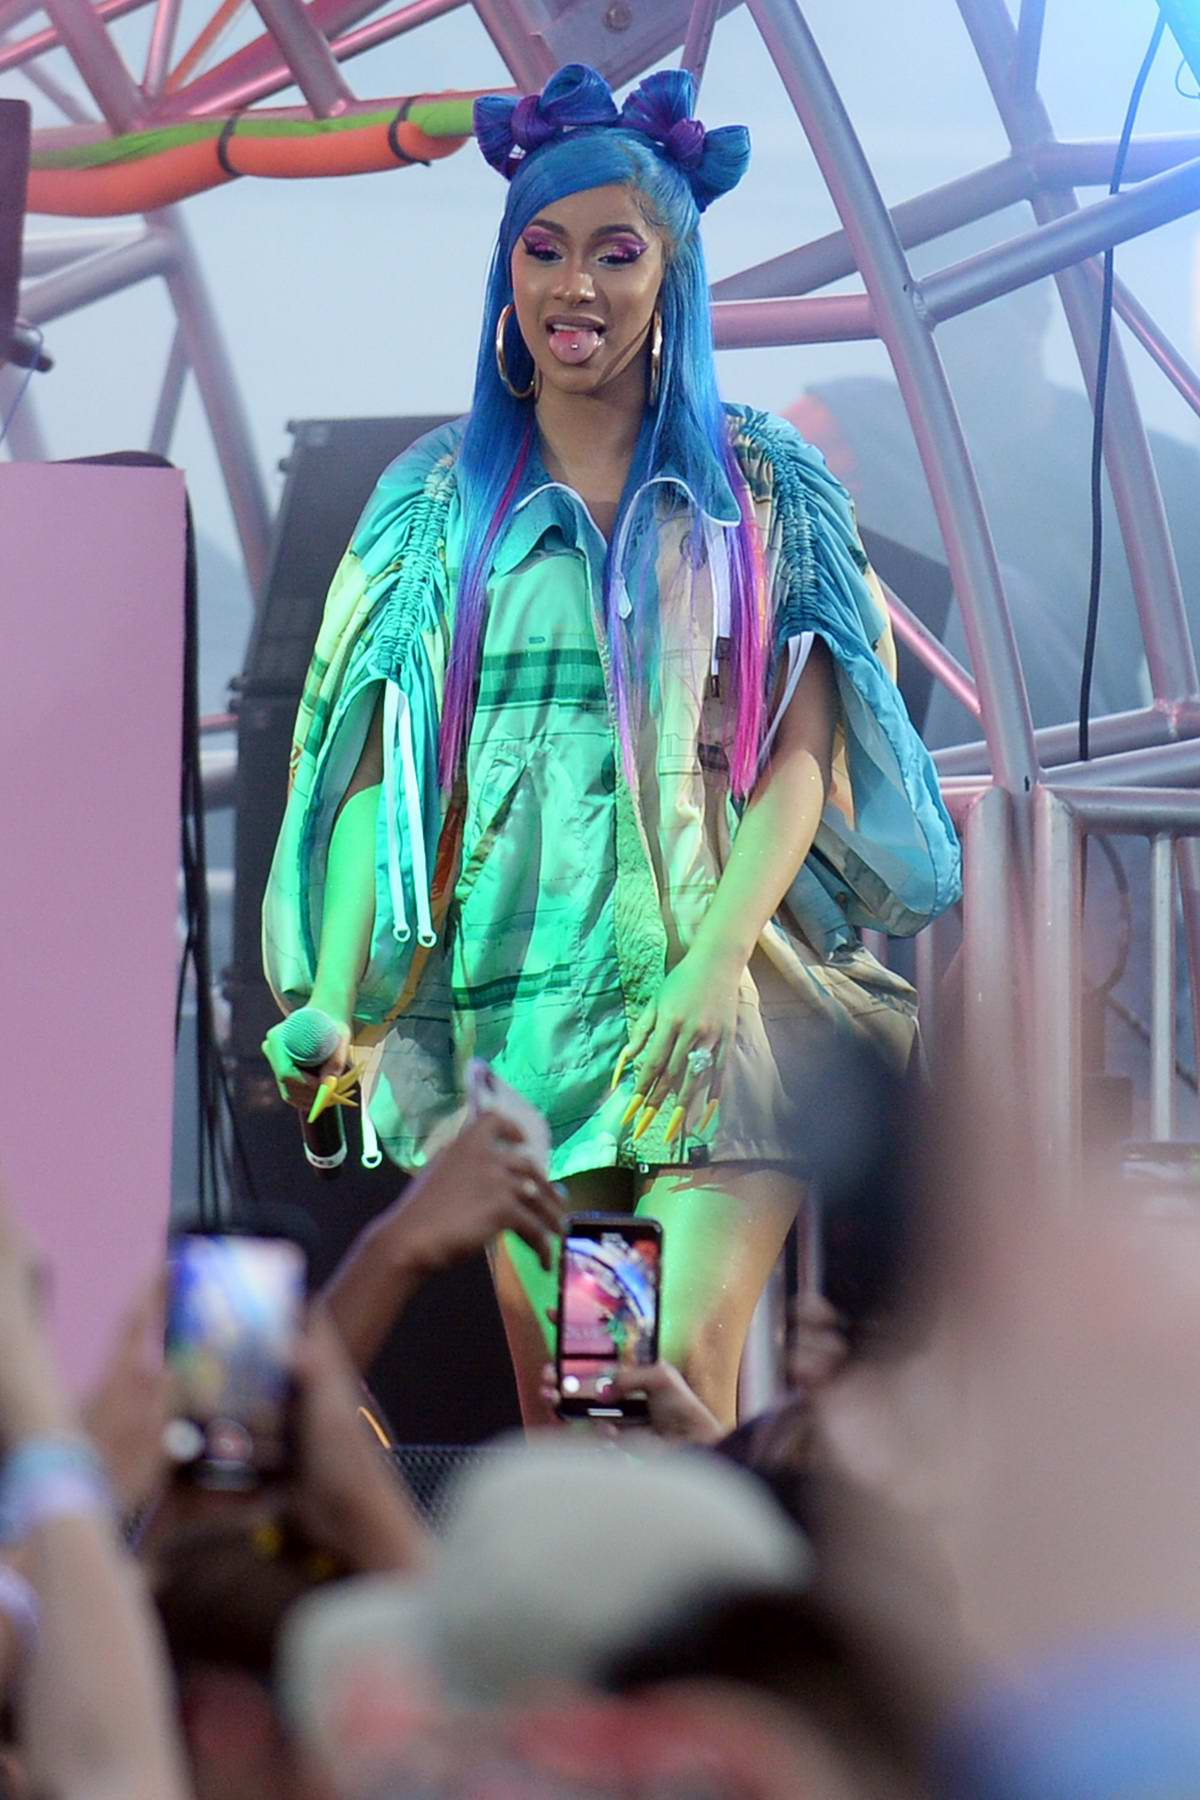 Cardi B performs at Revolvefestival 2019 – Day 2 during Coachella Valley Music and Arts Festival in Indio, California